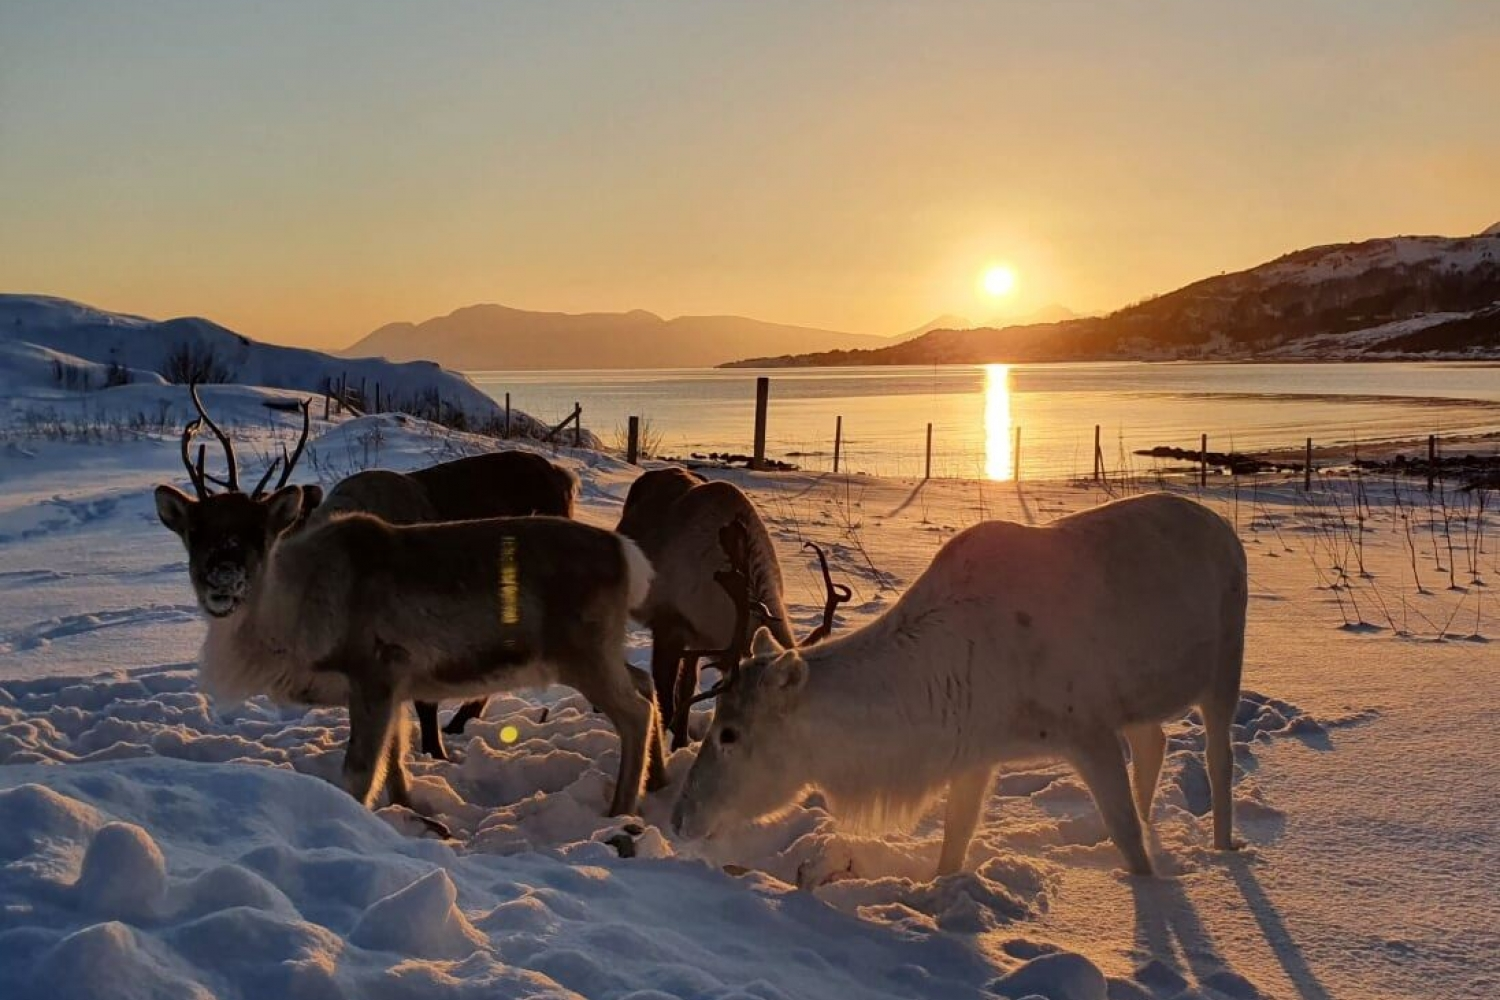 Reindeer in the snow, sun in the background